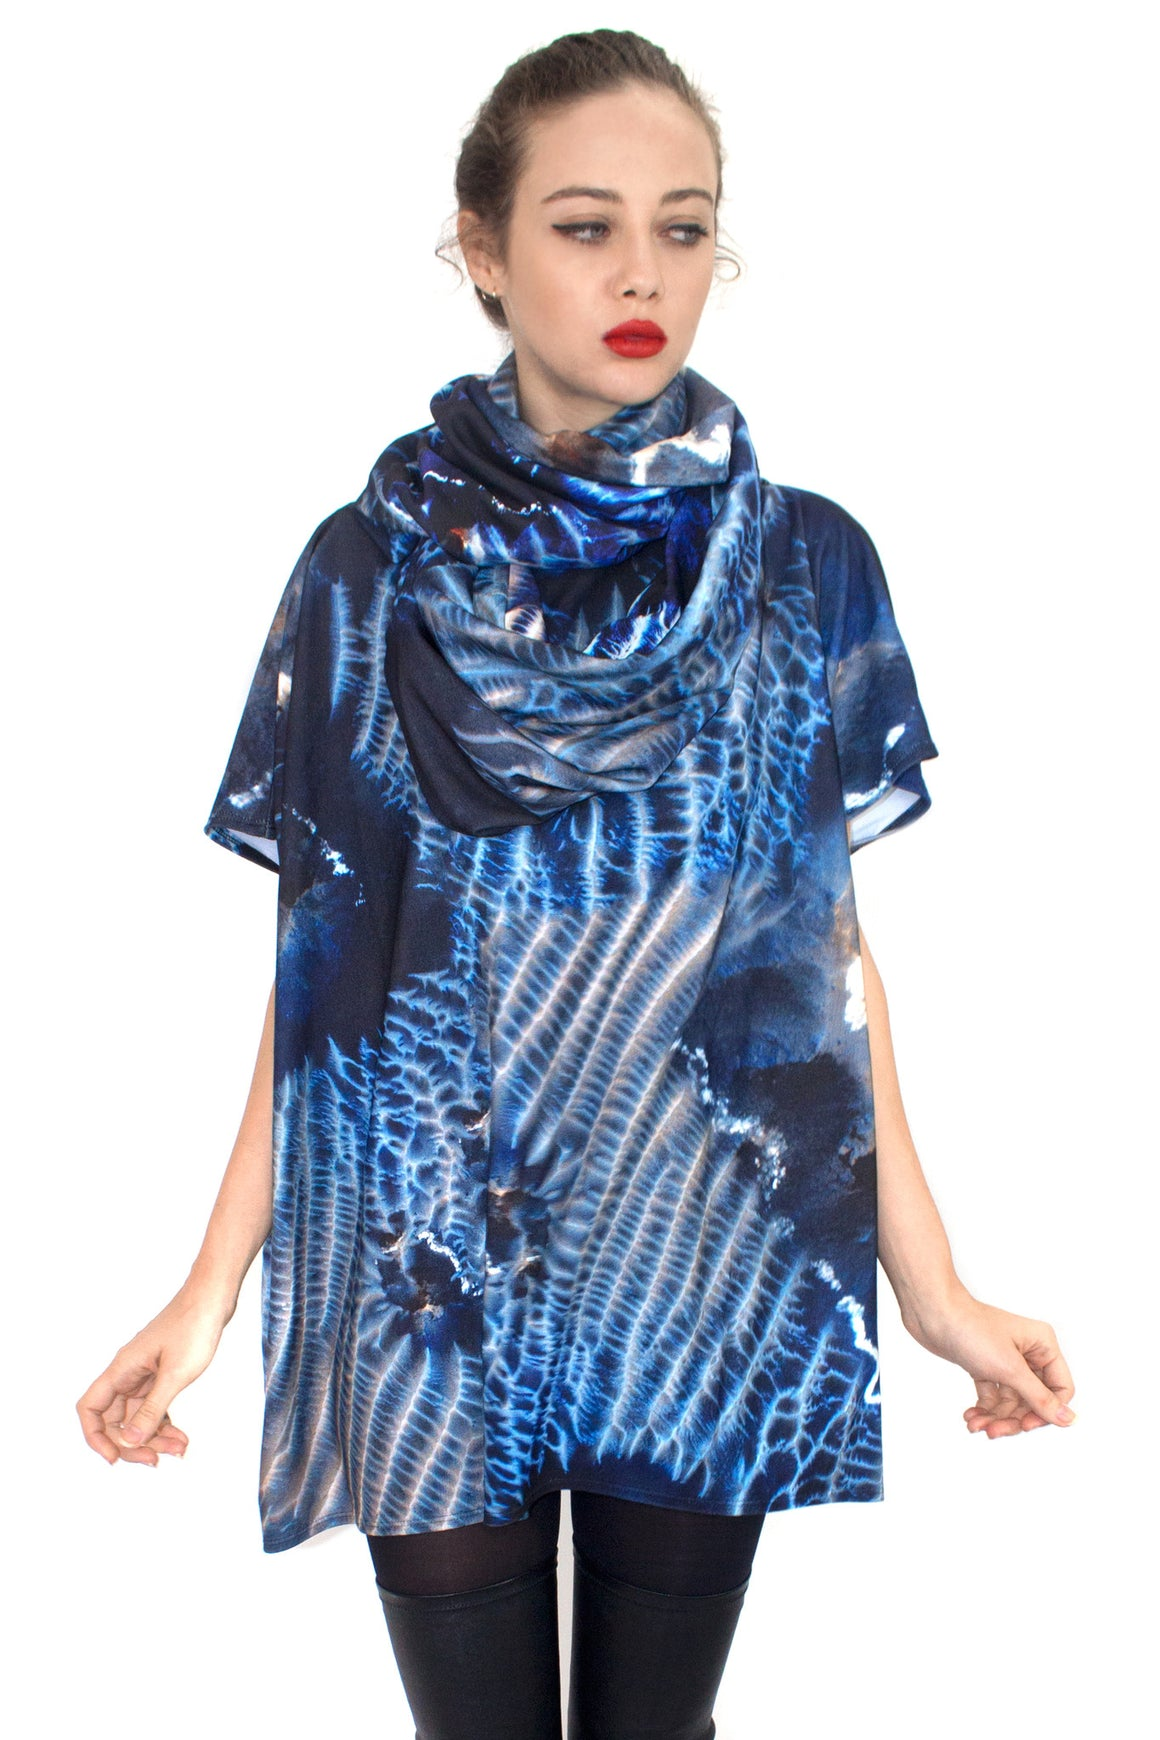 Mars Dunes Jersey Top, Shadowplay New York, Mars Print, Space Clothing